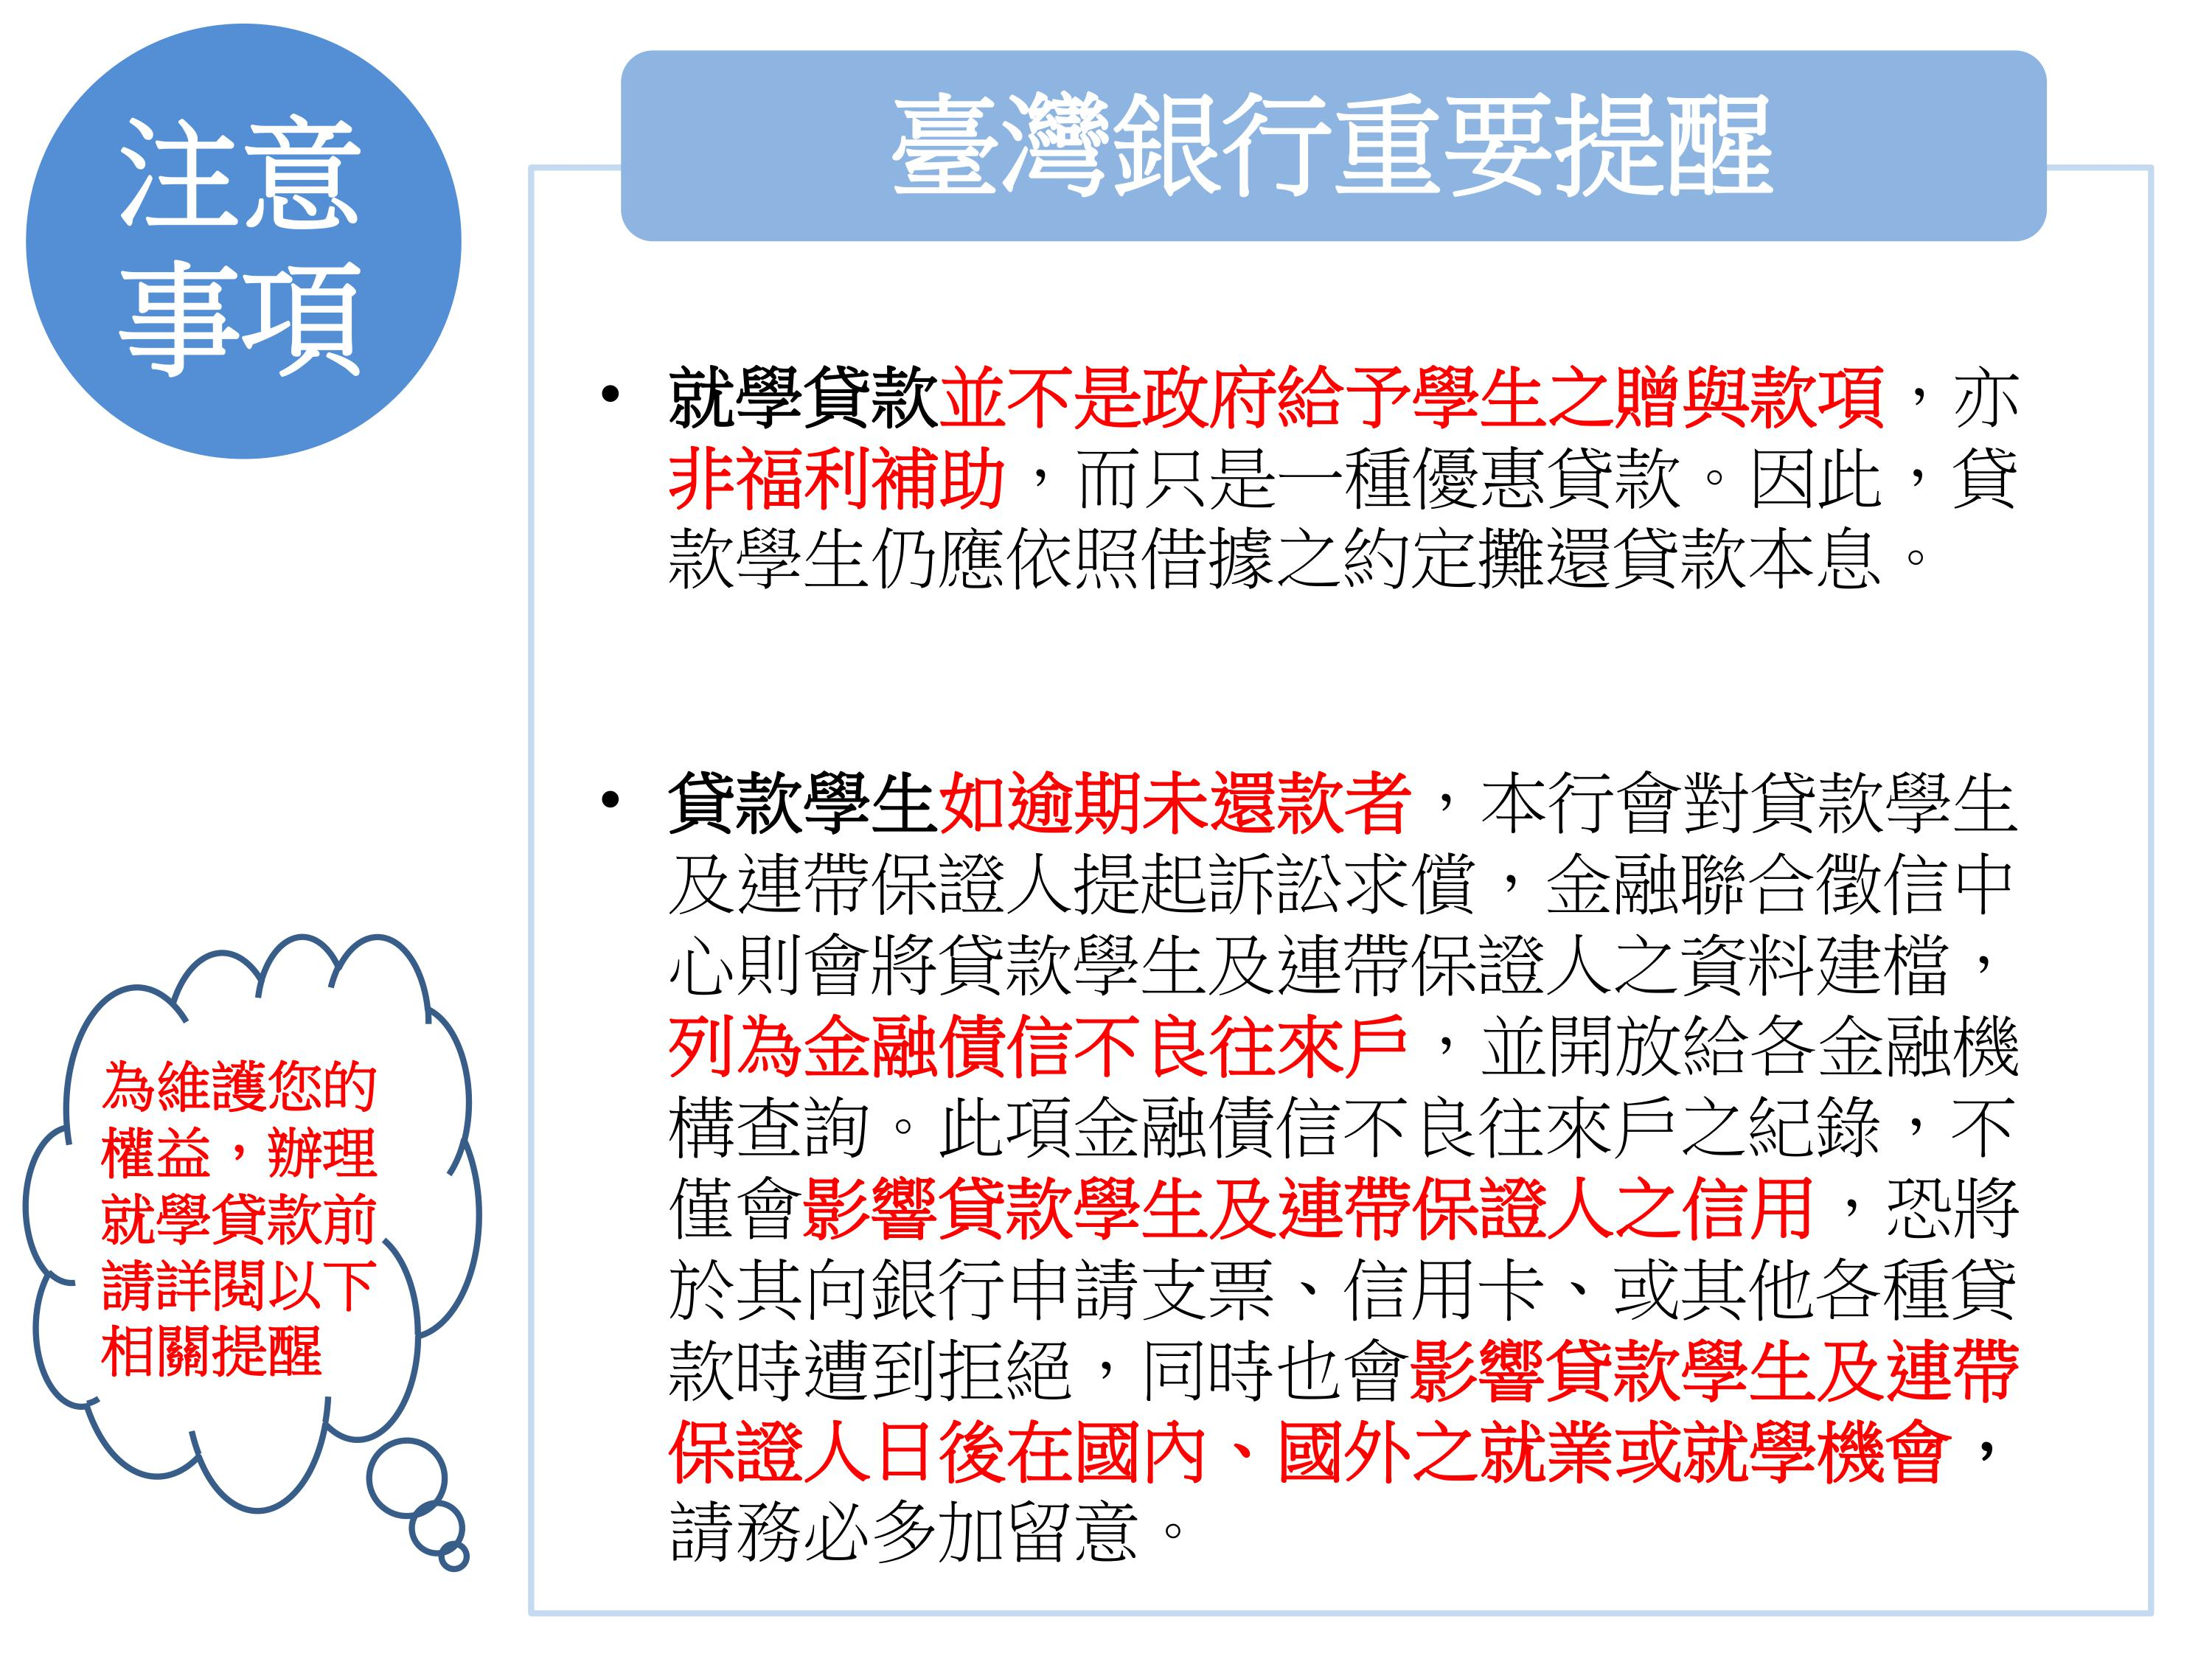 http://www.ccut.edu.tw/adminSection/grant1880/downloads/就貸1229_imgs-0001.jpg